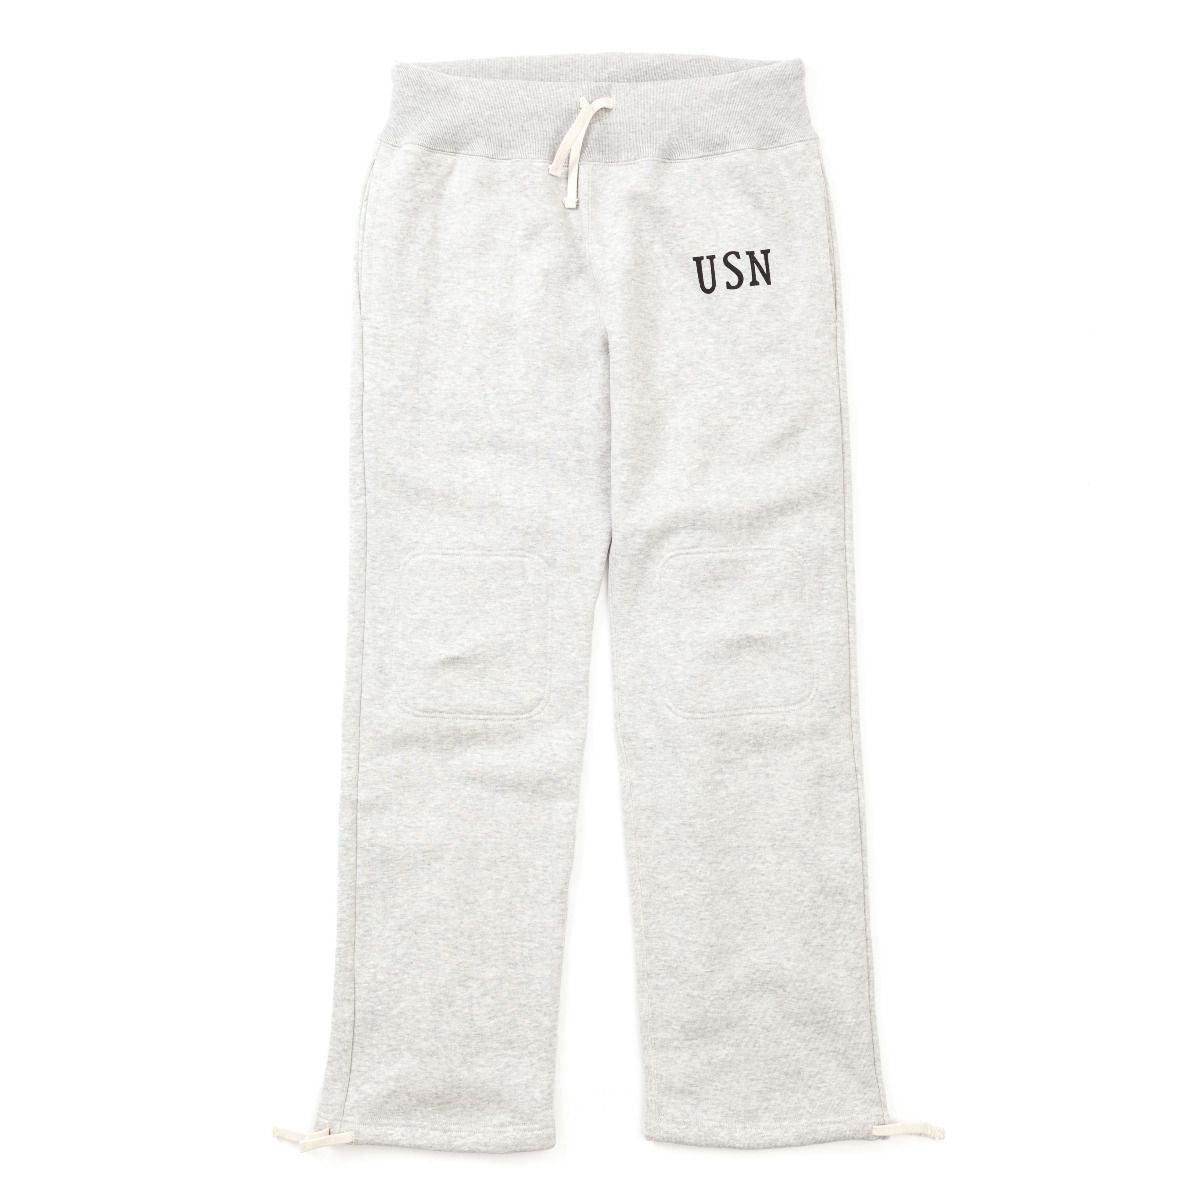 U.S.N. Sweat Pants